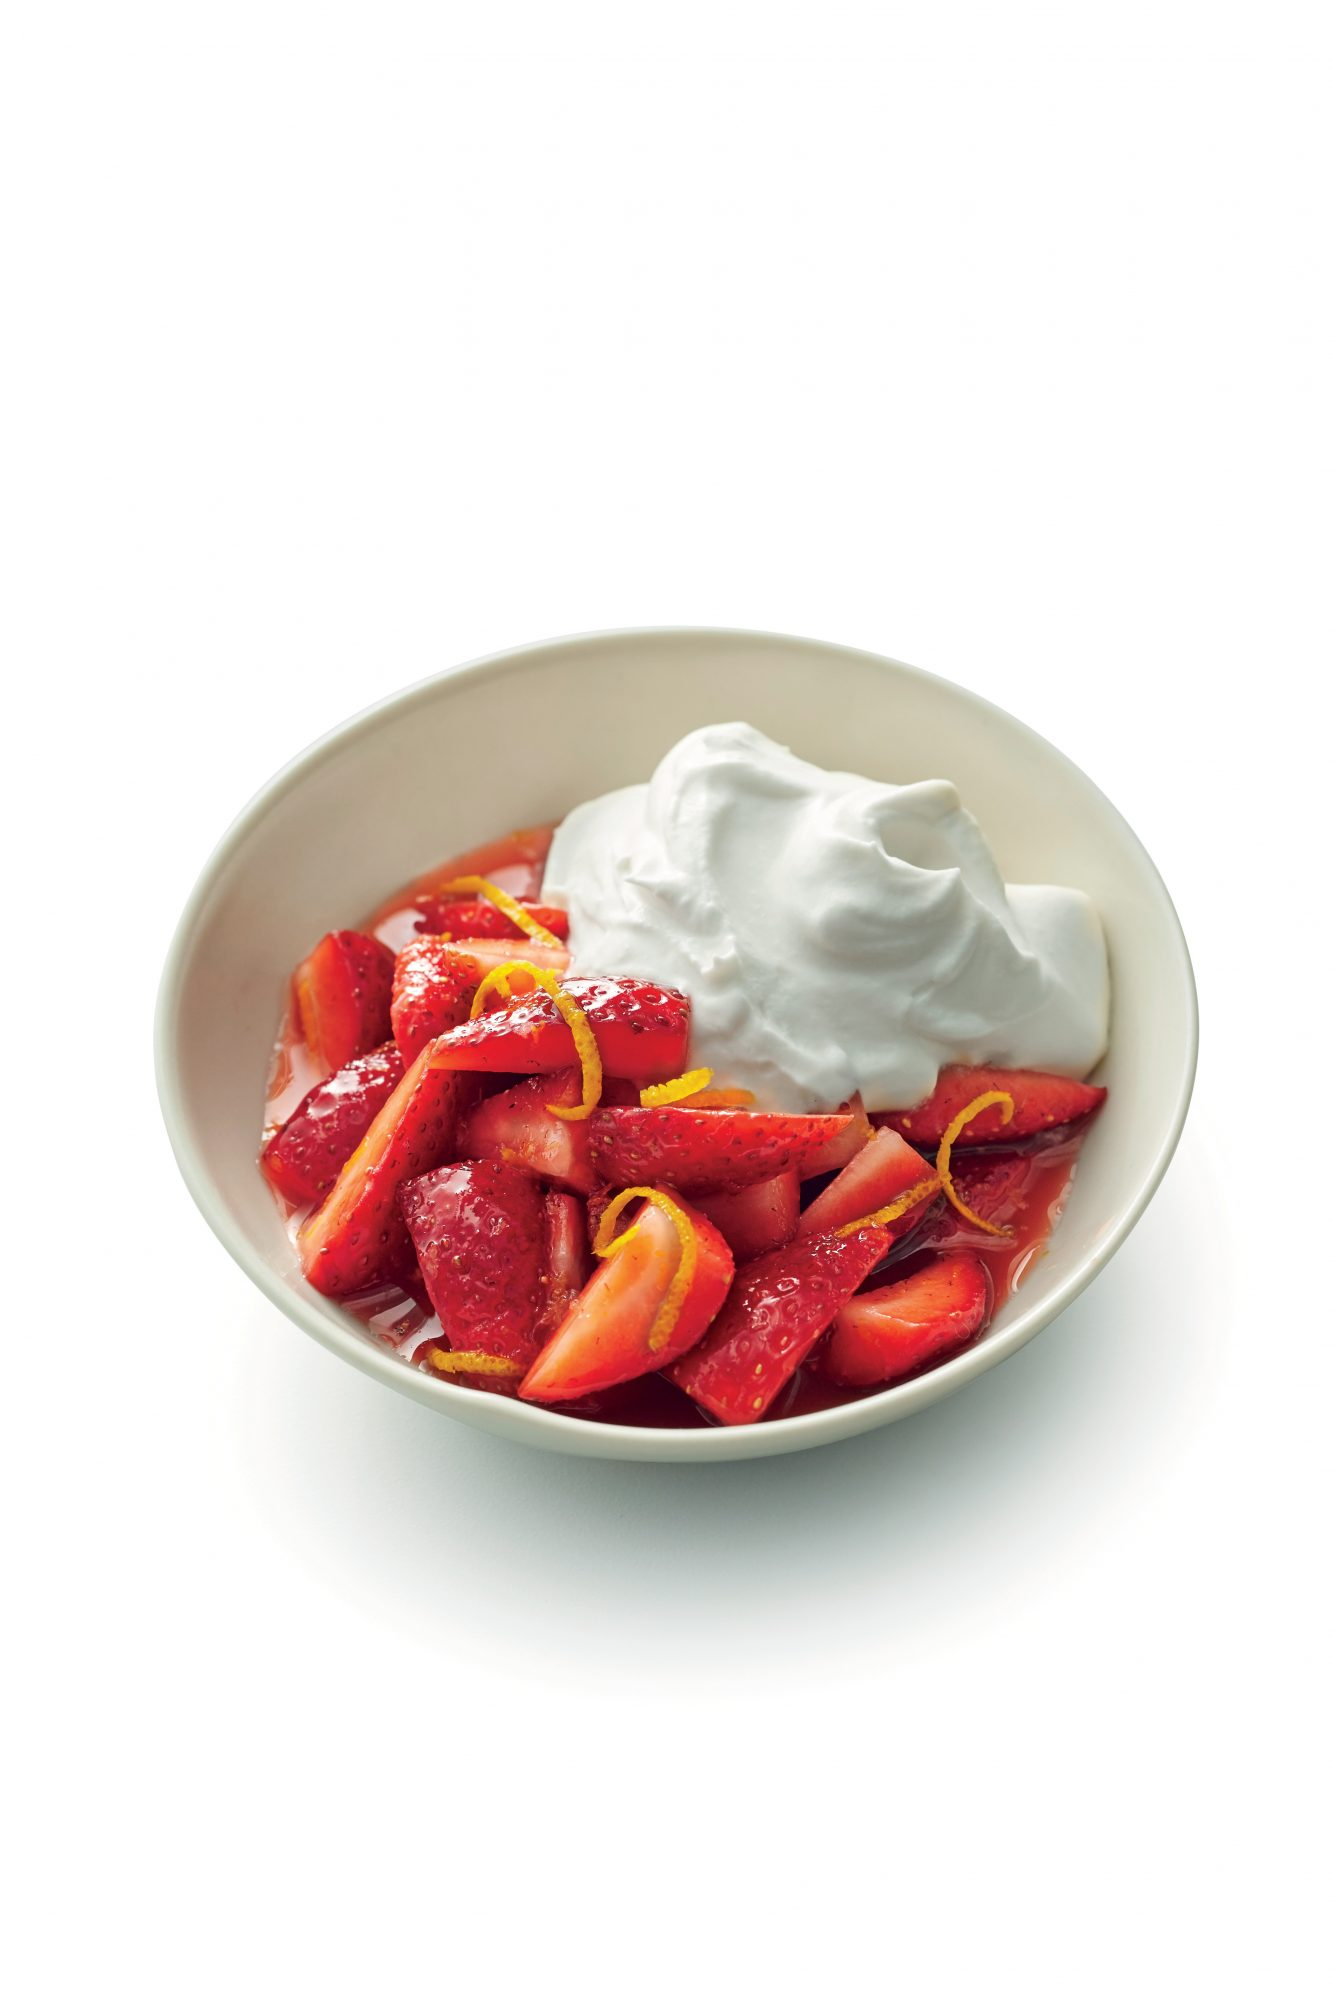 how to make strawberries and cream with sour cream